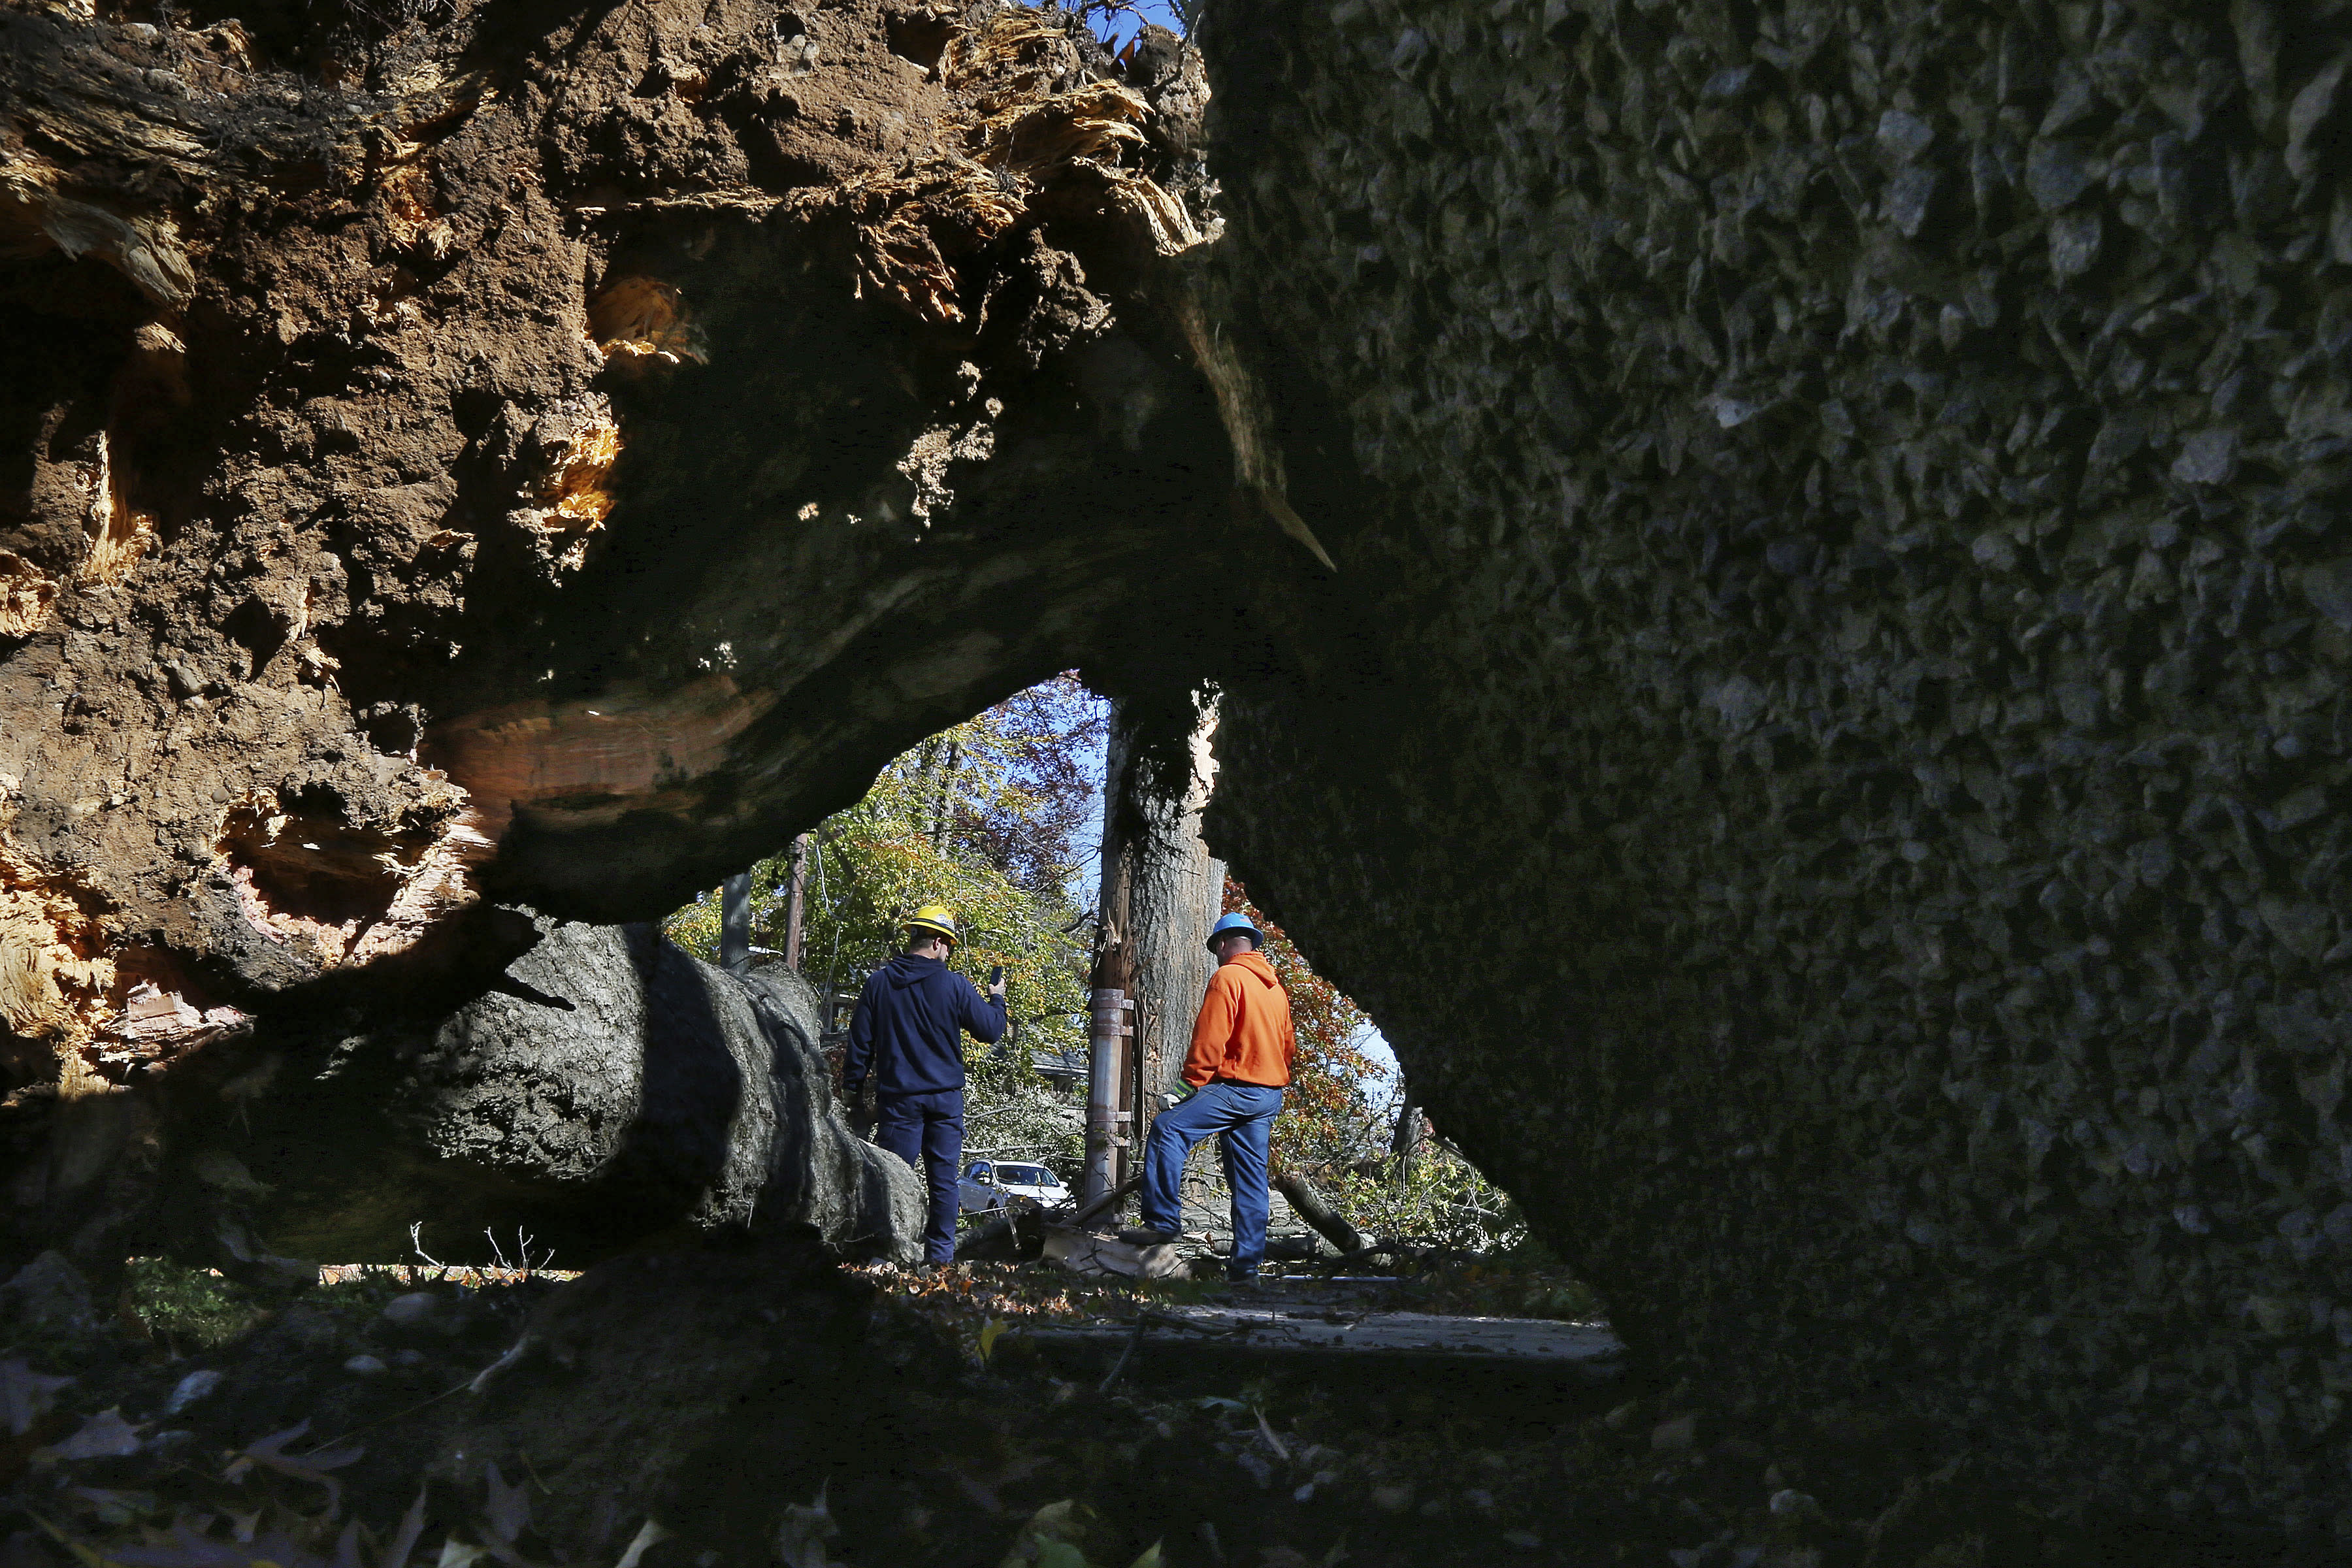 Crews from Madison Electric and Butler Municipal Power and Light work on downed power lines as a large tree and sidewalk pad are lifted on Green Hill Road on Friday, Nov. 1, 2019, in Madison, N.J. The borough was hit by high winds on heavy rain late the night before. (AP Photo/Rich Schultz)